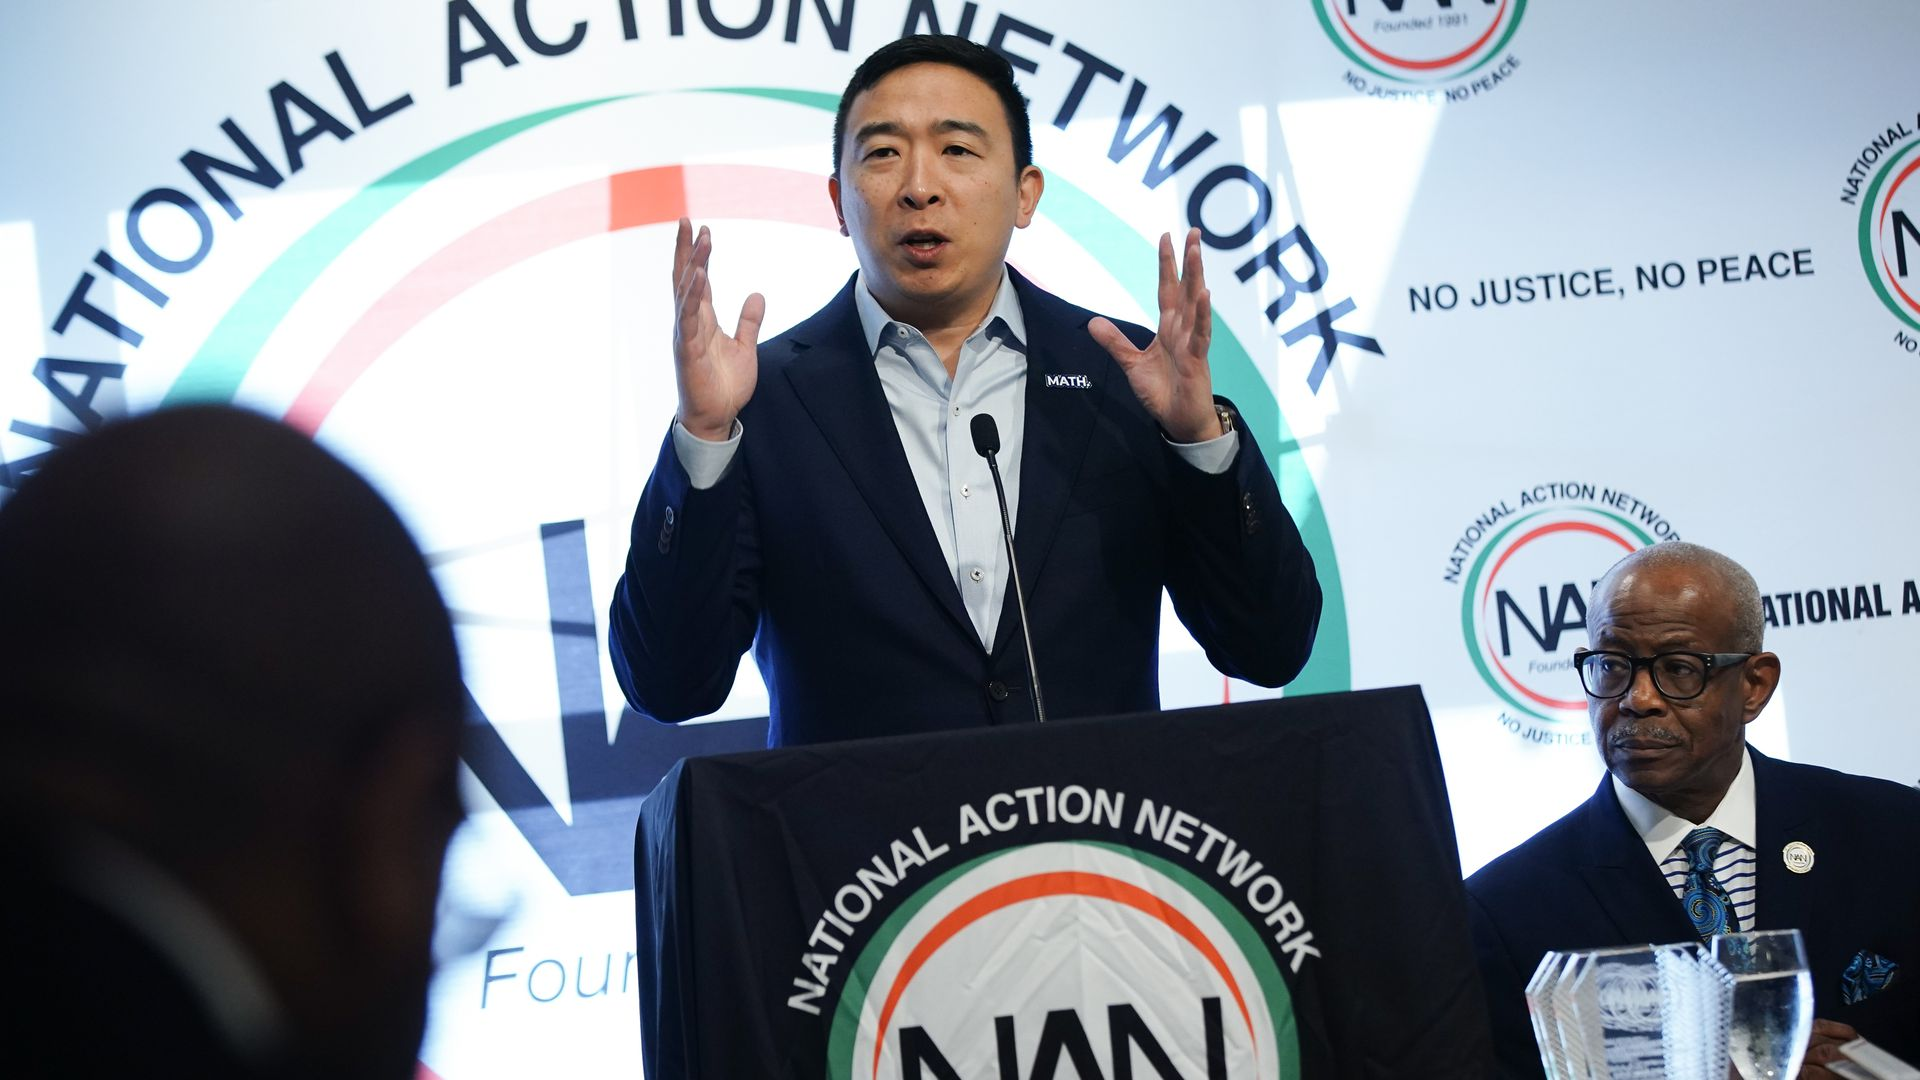 Democratic presidential candidate Andrew Yang speaks at the National Action Networks Southeast Regional Conference on November 21, 2019 in Atlanta, Georgia.